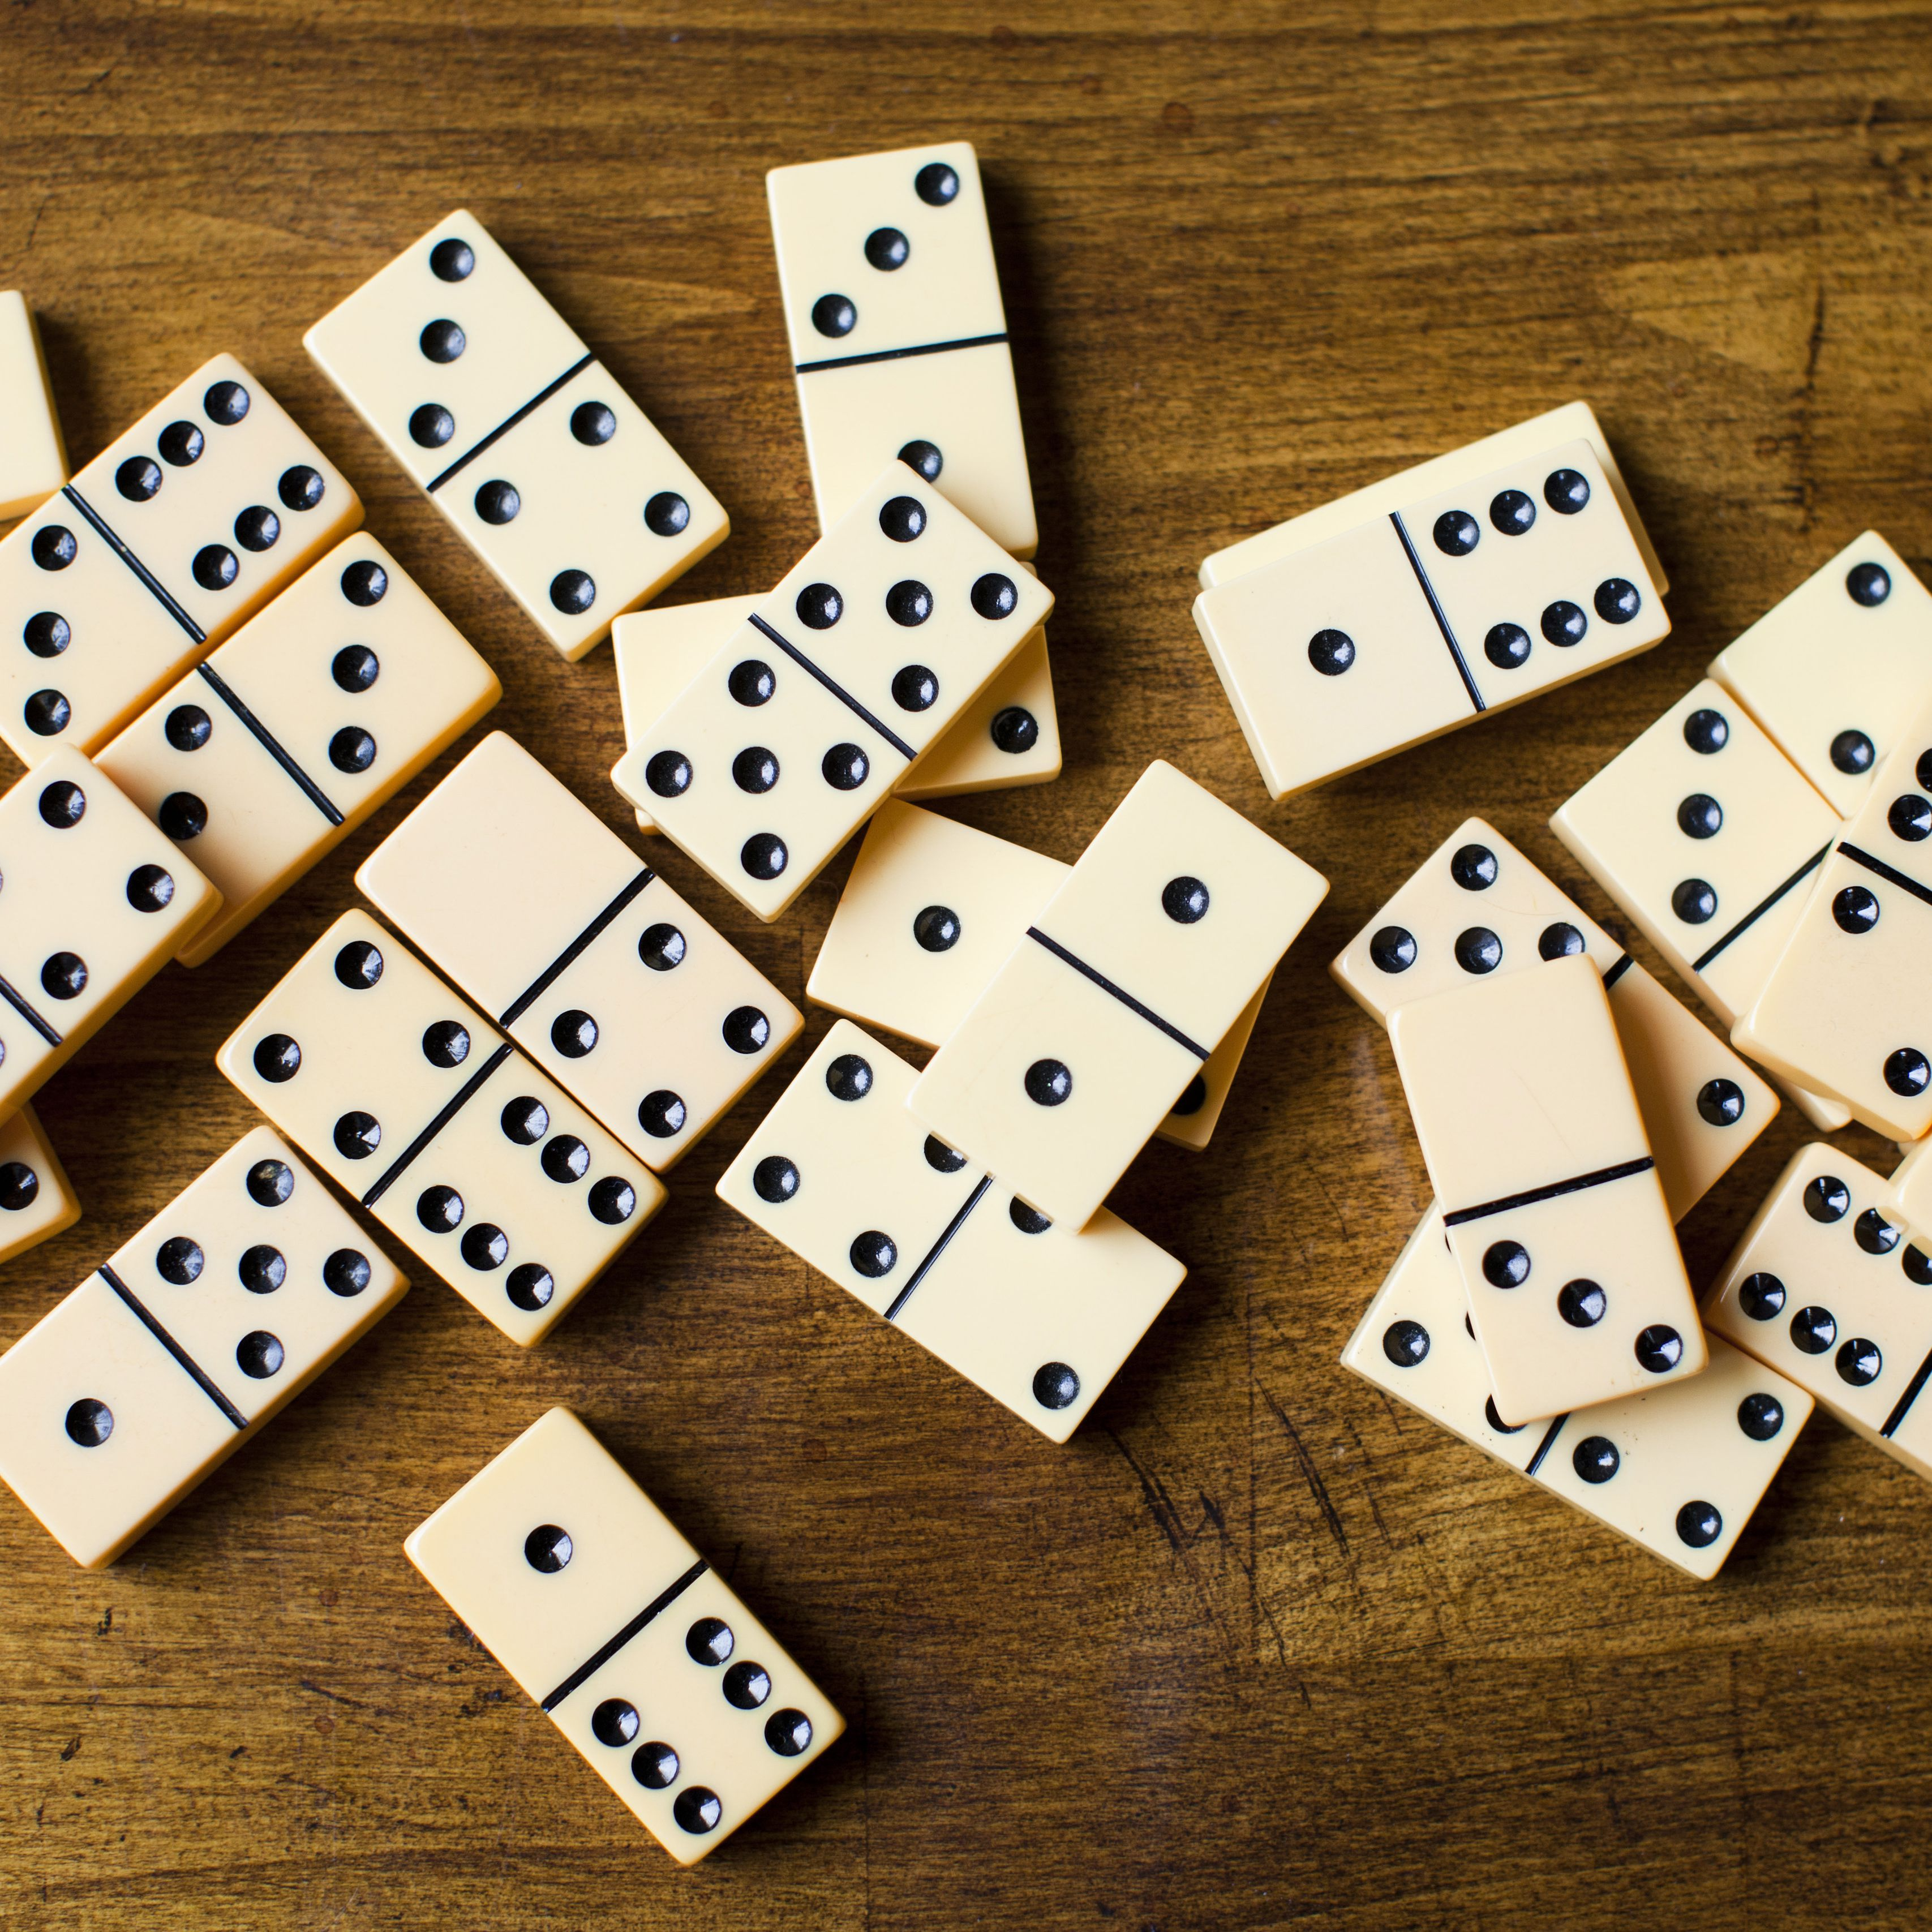 How To Play Chicken Foot Dominoes